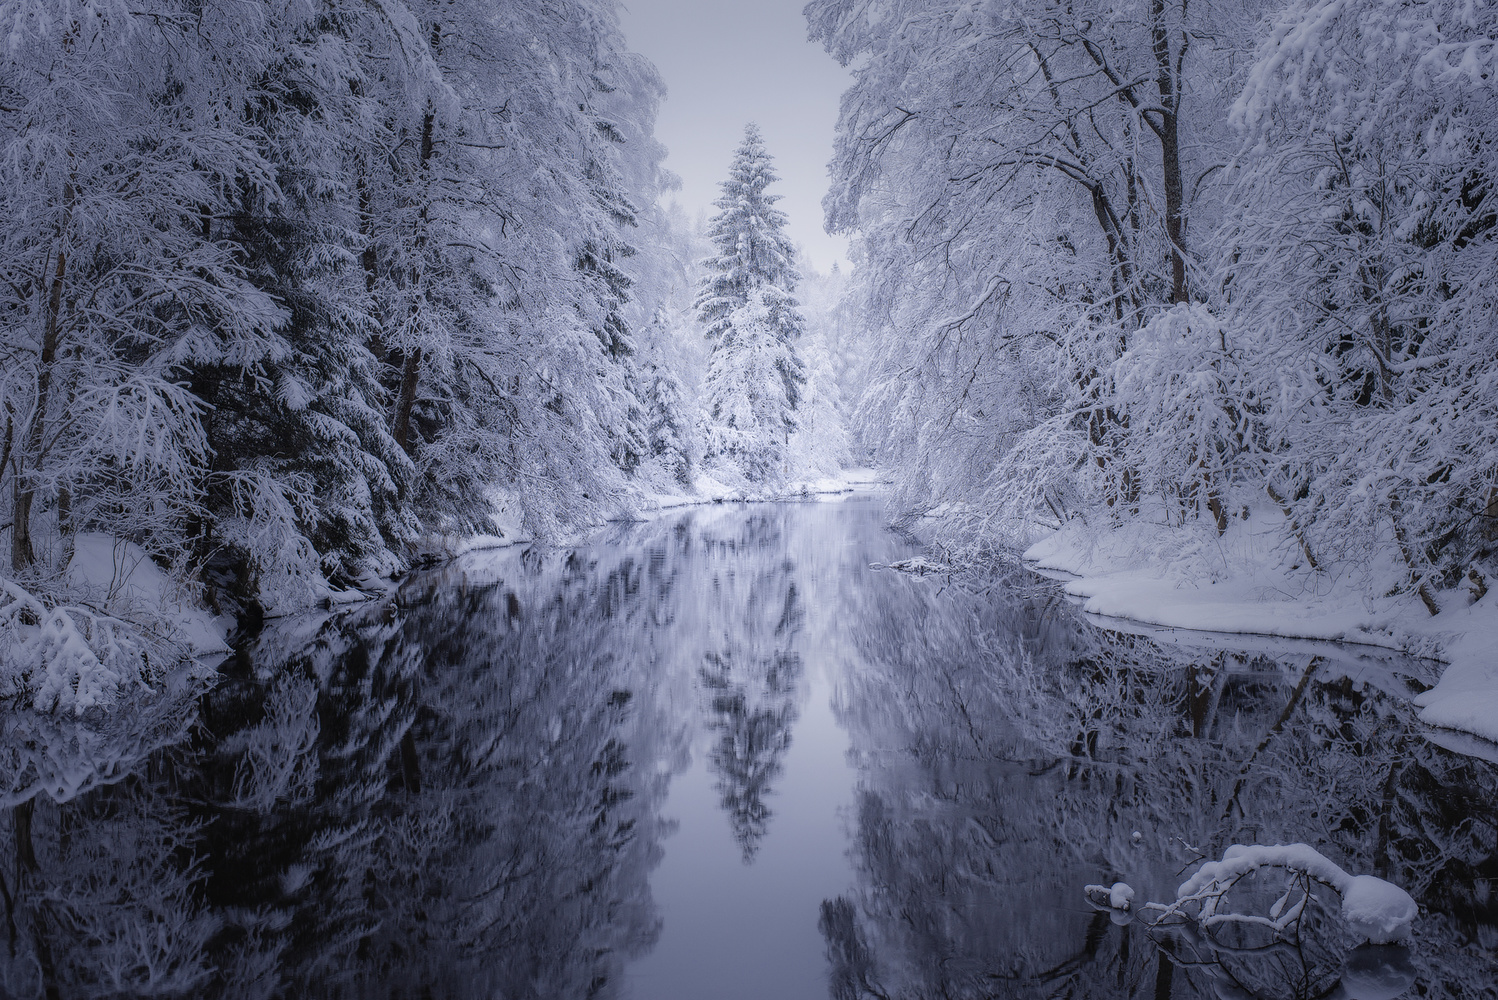 River in whilte by Dima Vorontsov